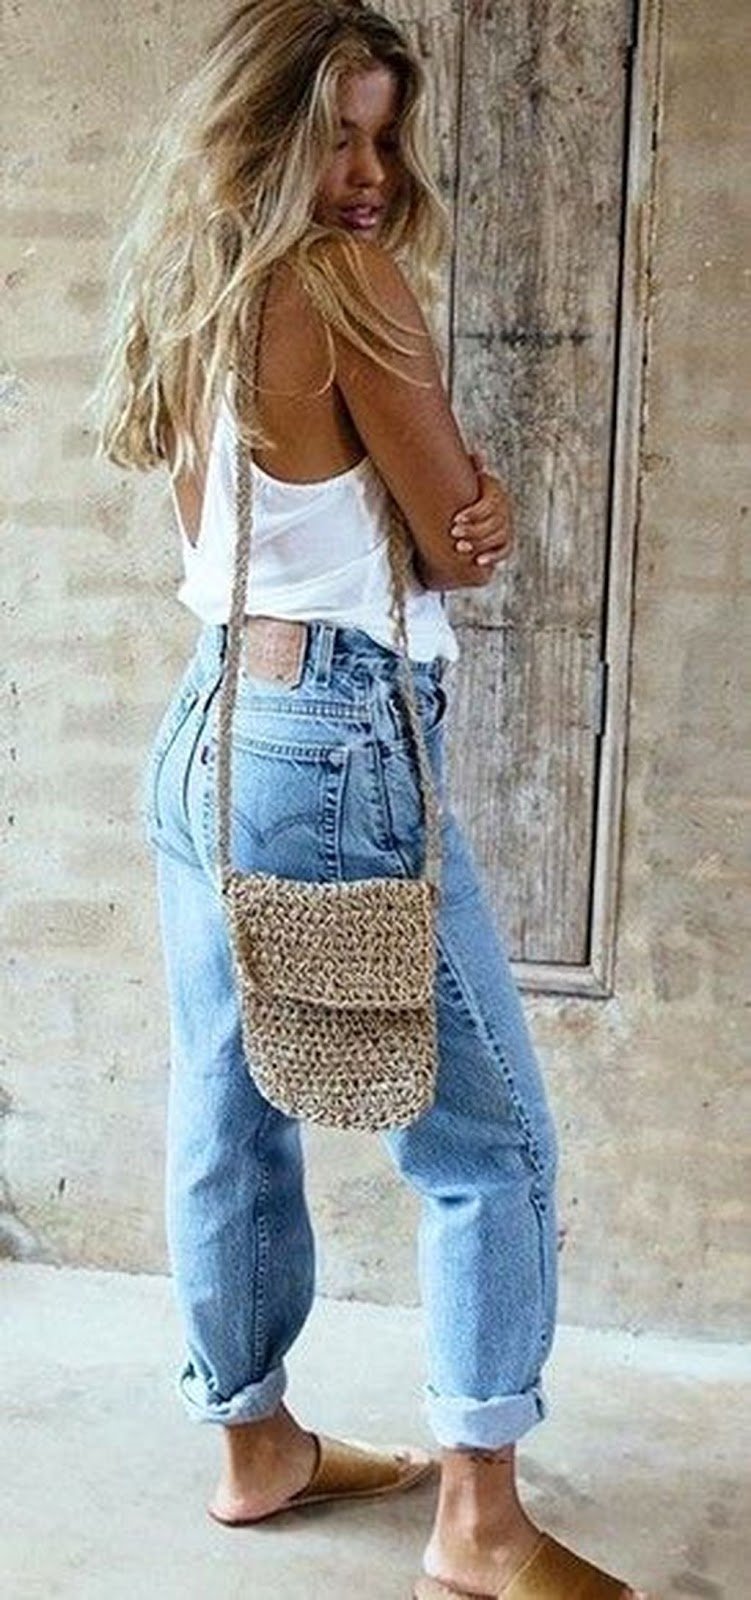 stylish look | nude bag + boyfriend jeans + top + slides